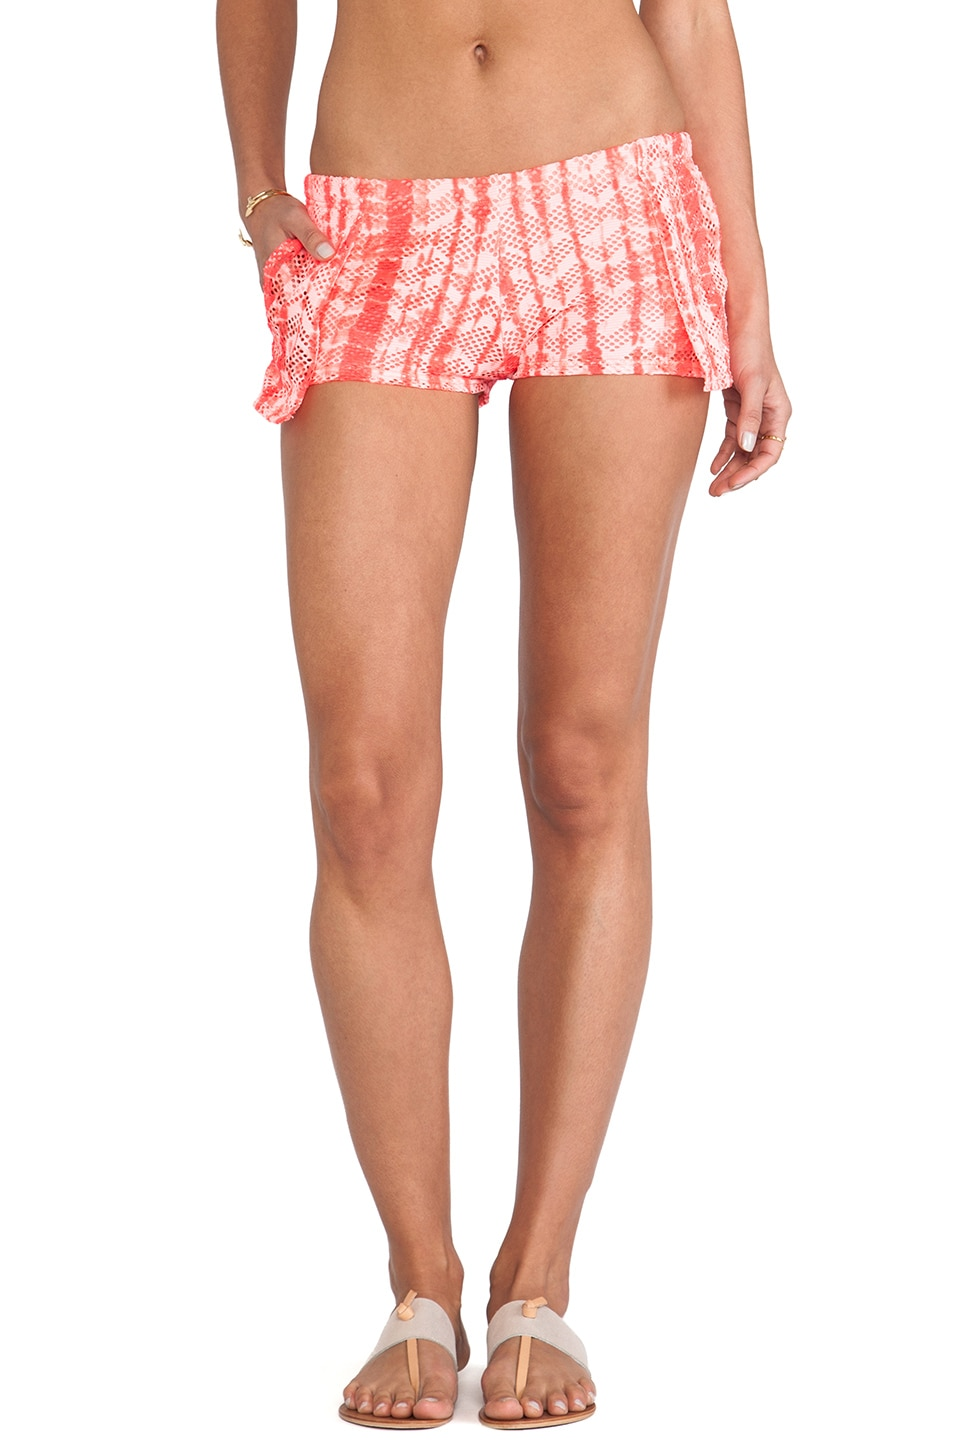 b.swim Sandy Shorts in Day Tripper Glow